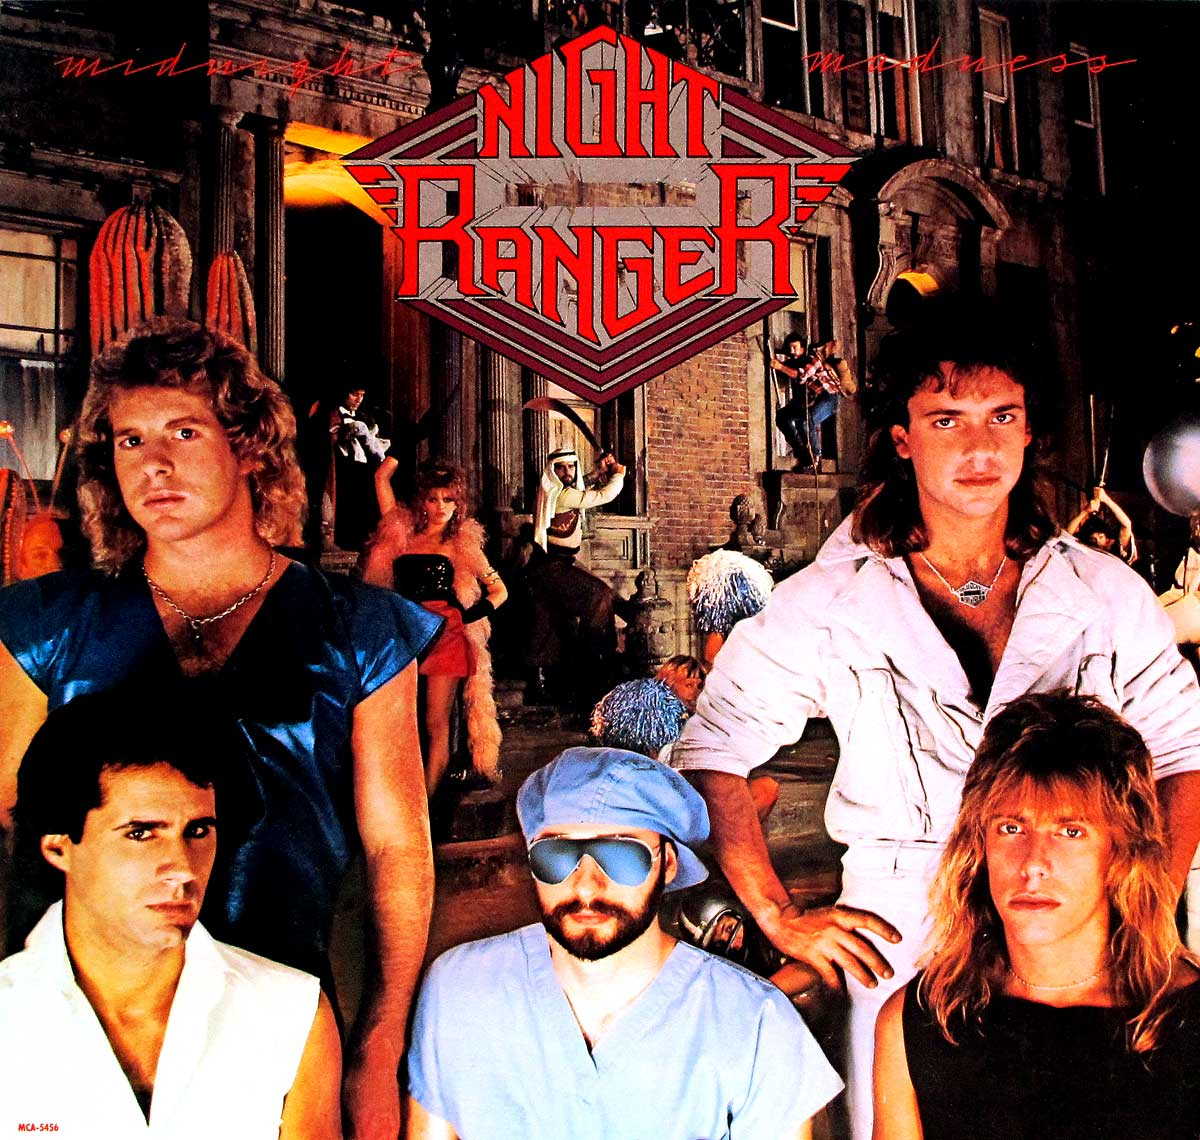 Album Front cover Photo of NIGHT RANGER MIDNIGHT MADNESS ORIG USA https://vinyl-records.nl/